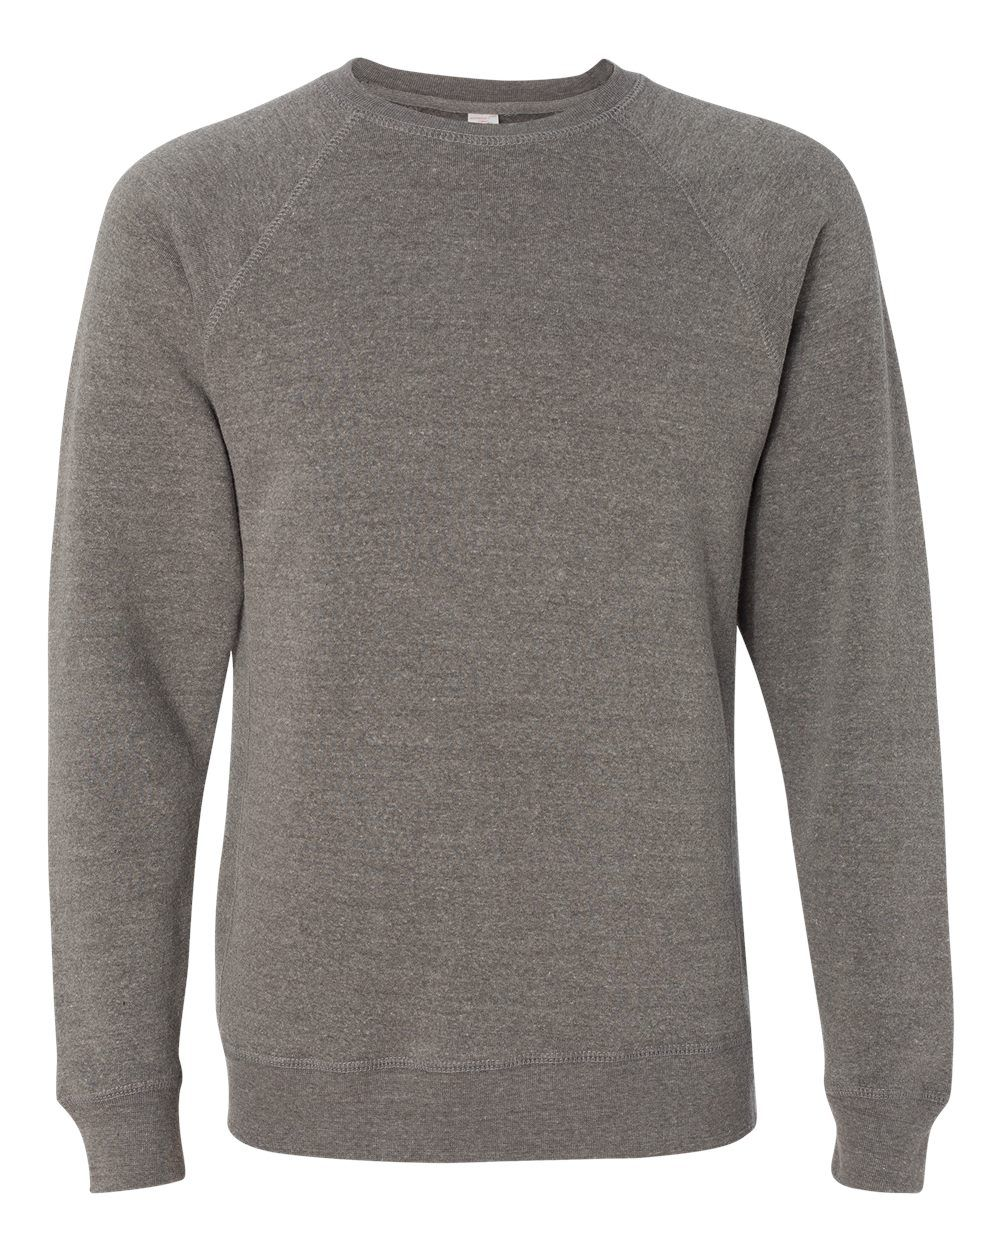 Wofupowga Mens Casual Solid Color Hooded Long Sleeve Pullover Sweatshirts